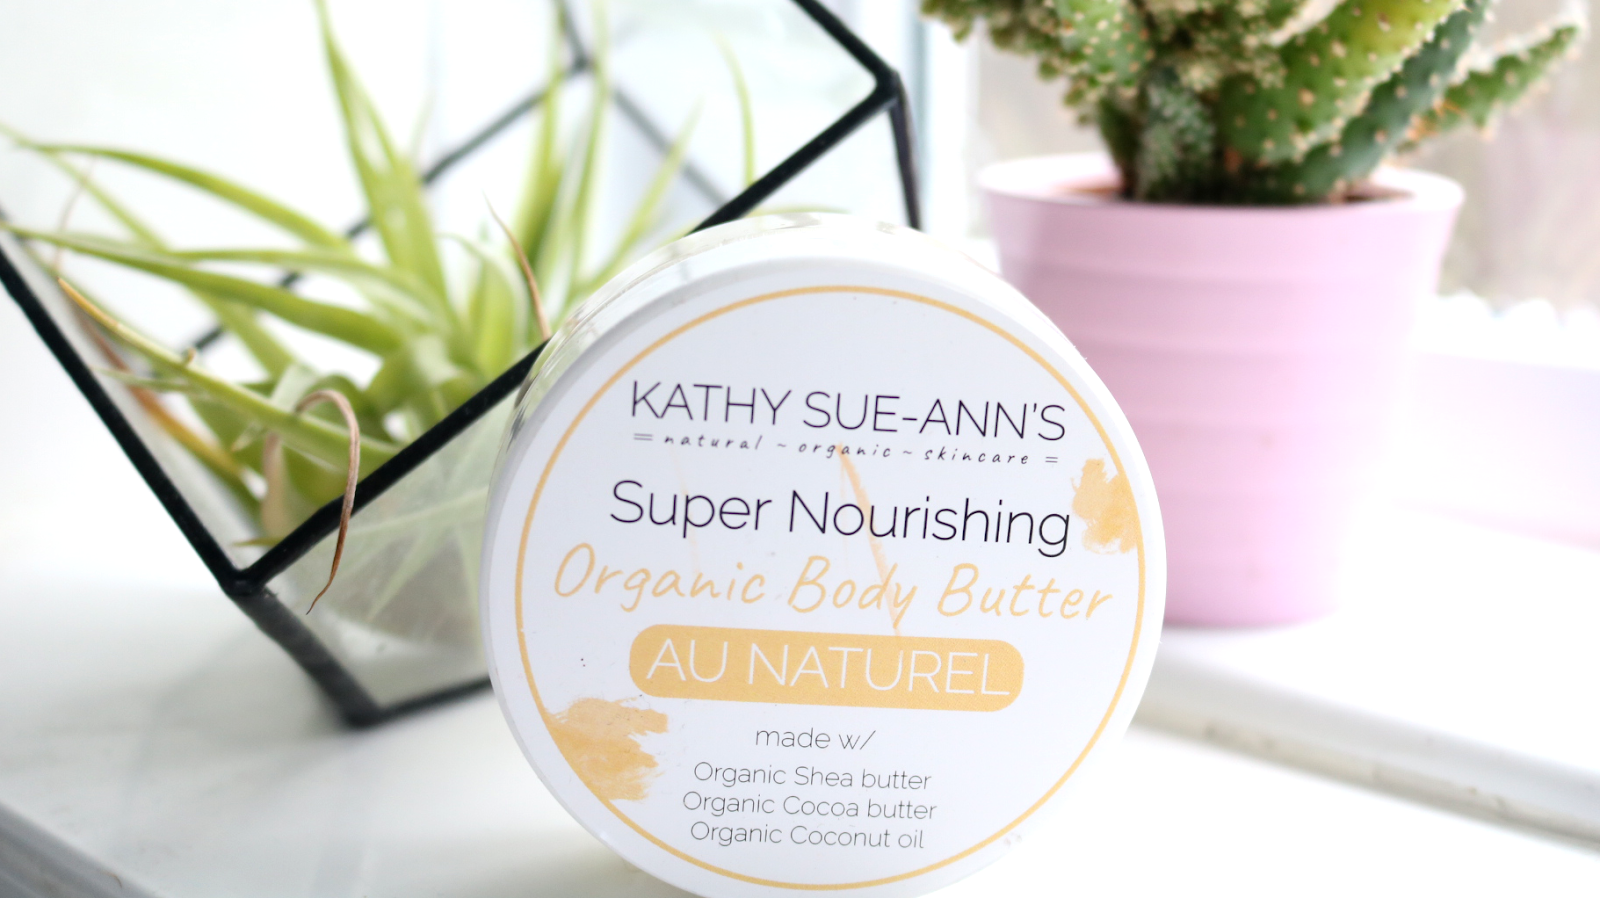 Kathy Sue-Ann's Super Moisturising Organic Body Butter in Au Naturel